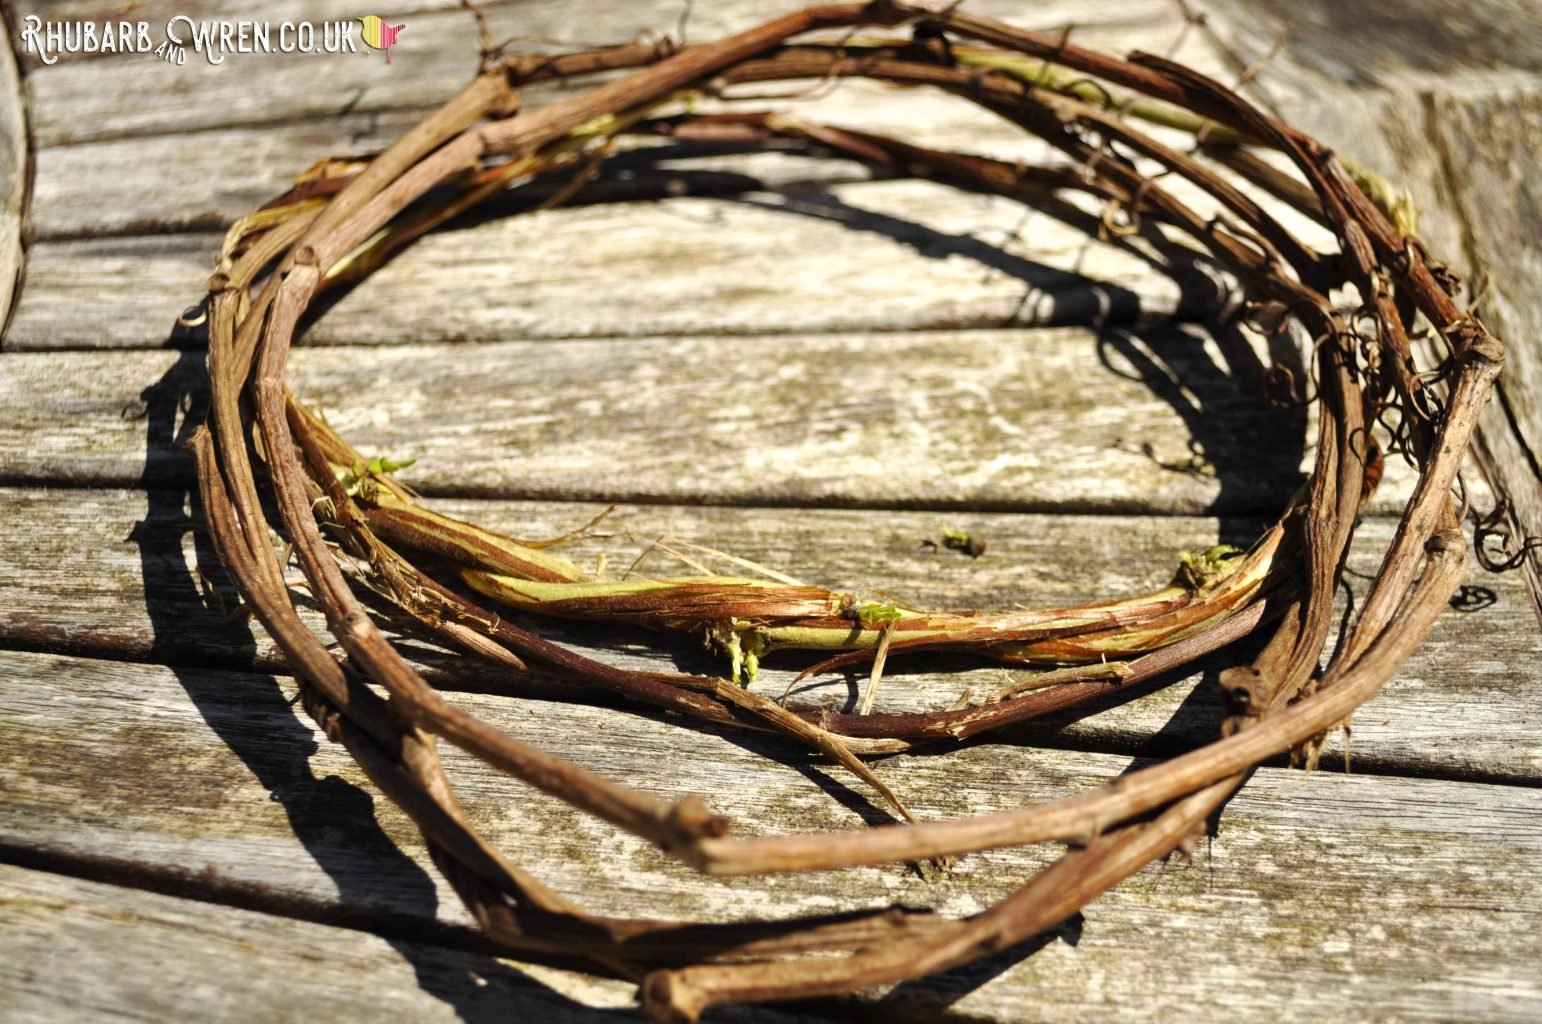 Vines twisted into simple wreaths to make a twig ball lantern